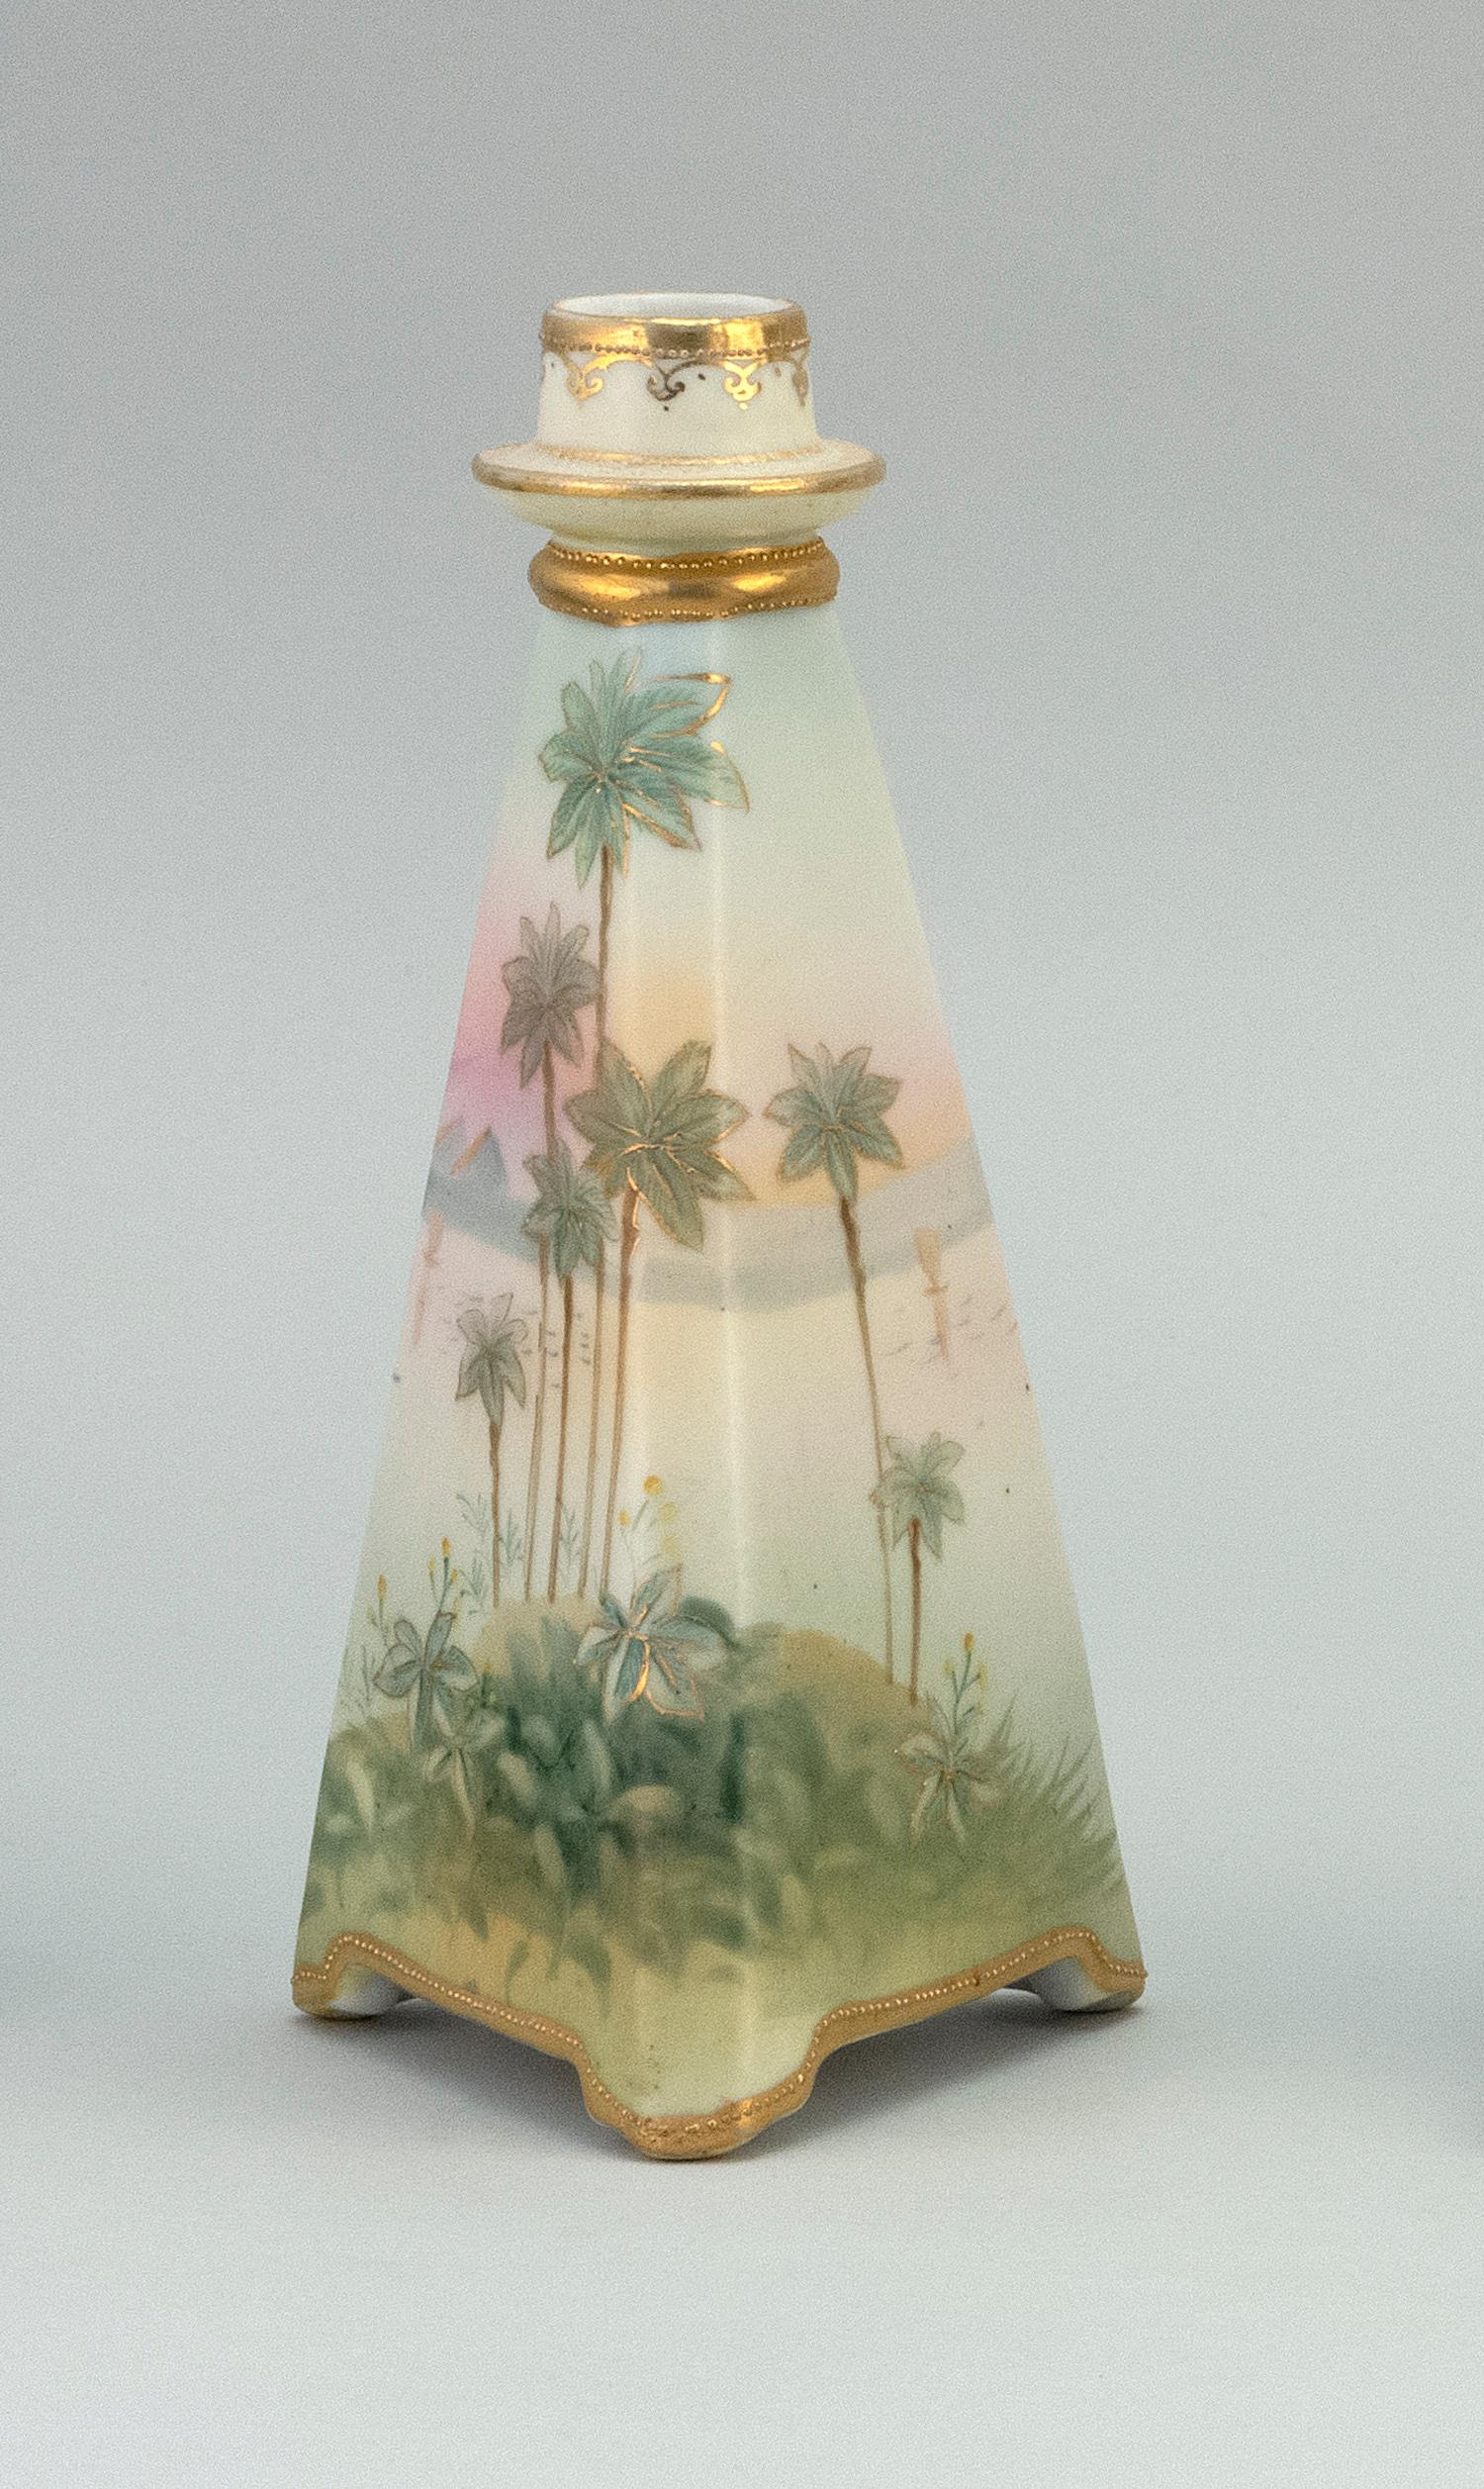 """NIPPON PORCELAIN CANDLESTICK In pyramid form, with scenic decoration of the Nile. Van Patten #47 mark on base. Height 8""""."""